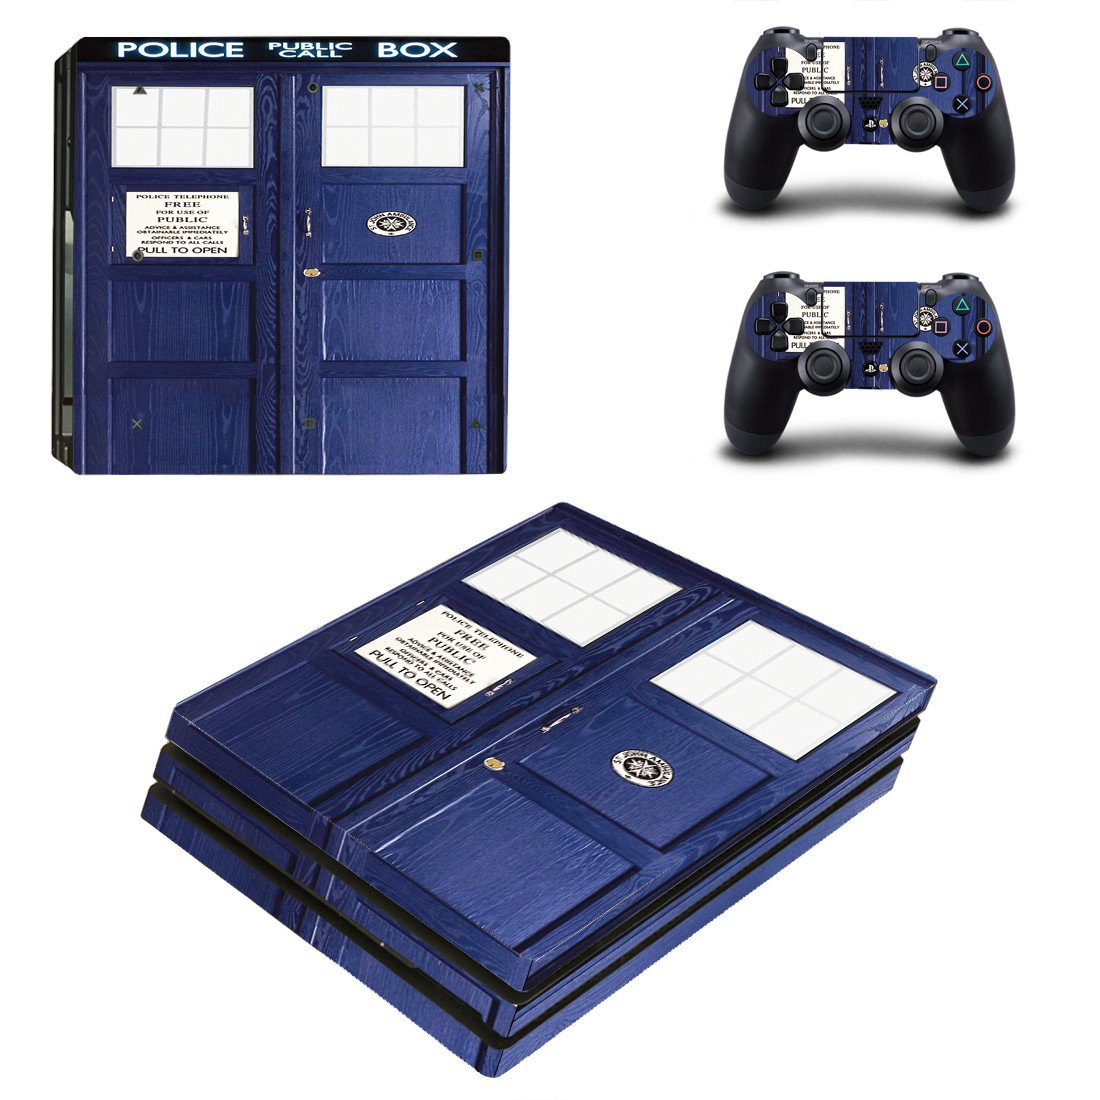 Police Public Call Box ps4 pro skin decal for console and controllers